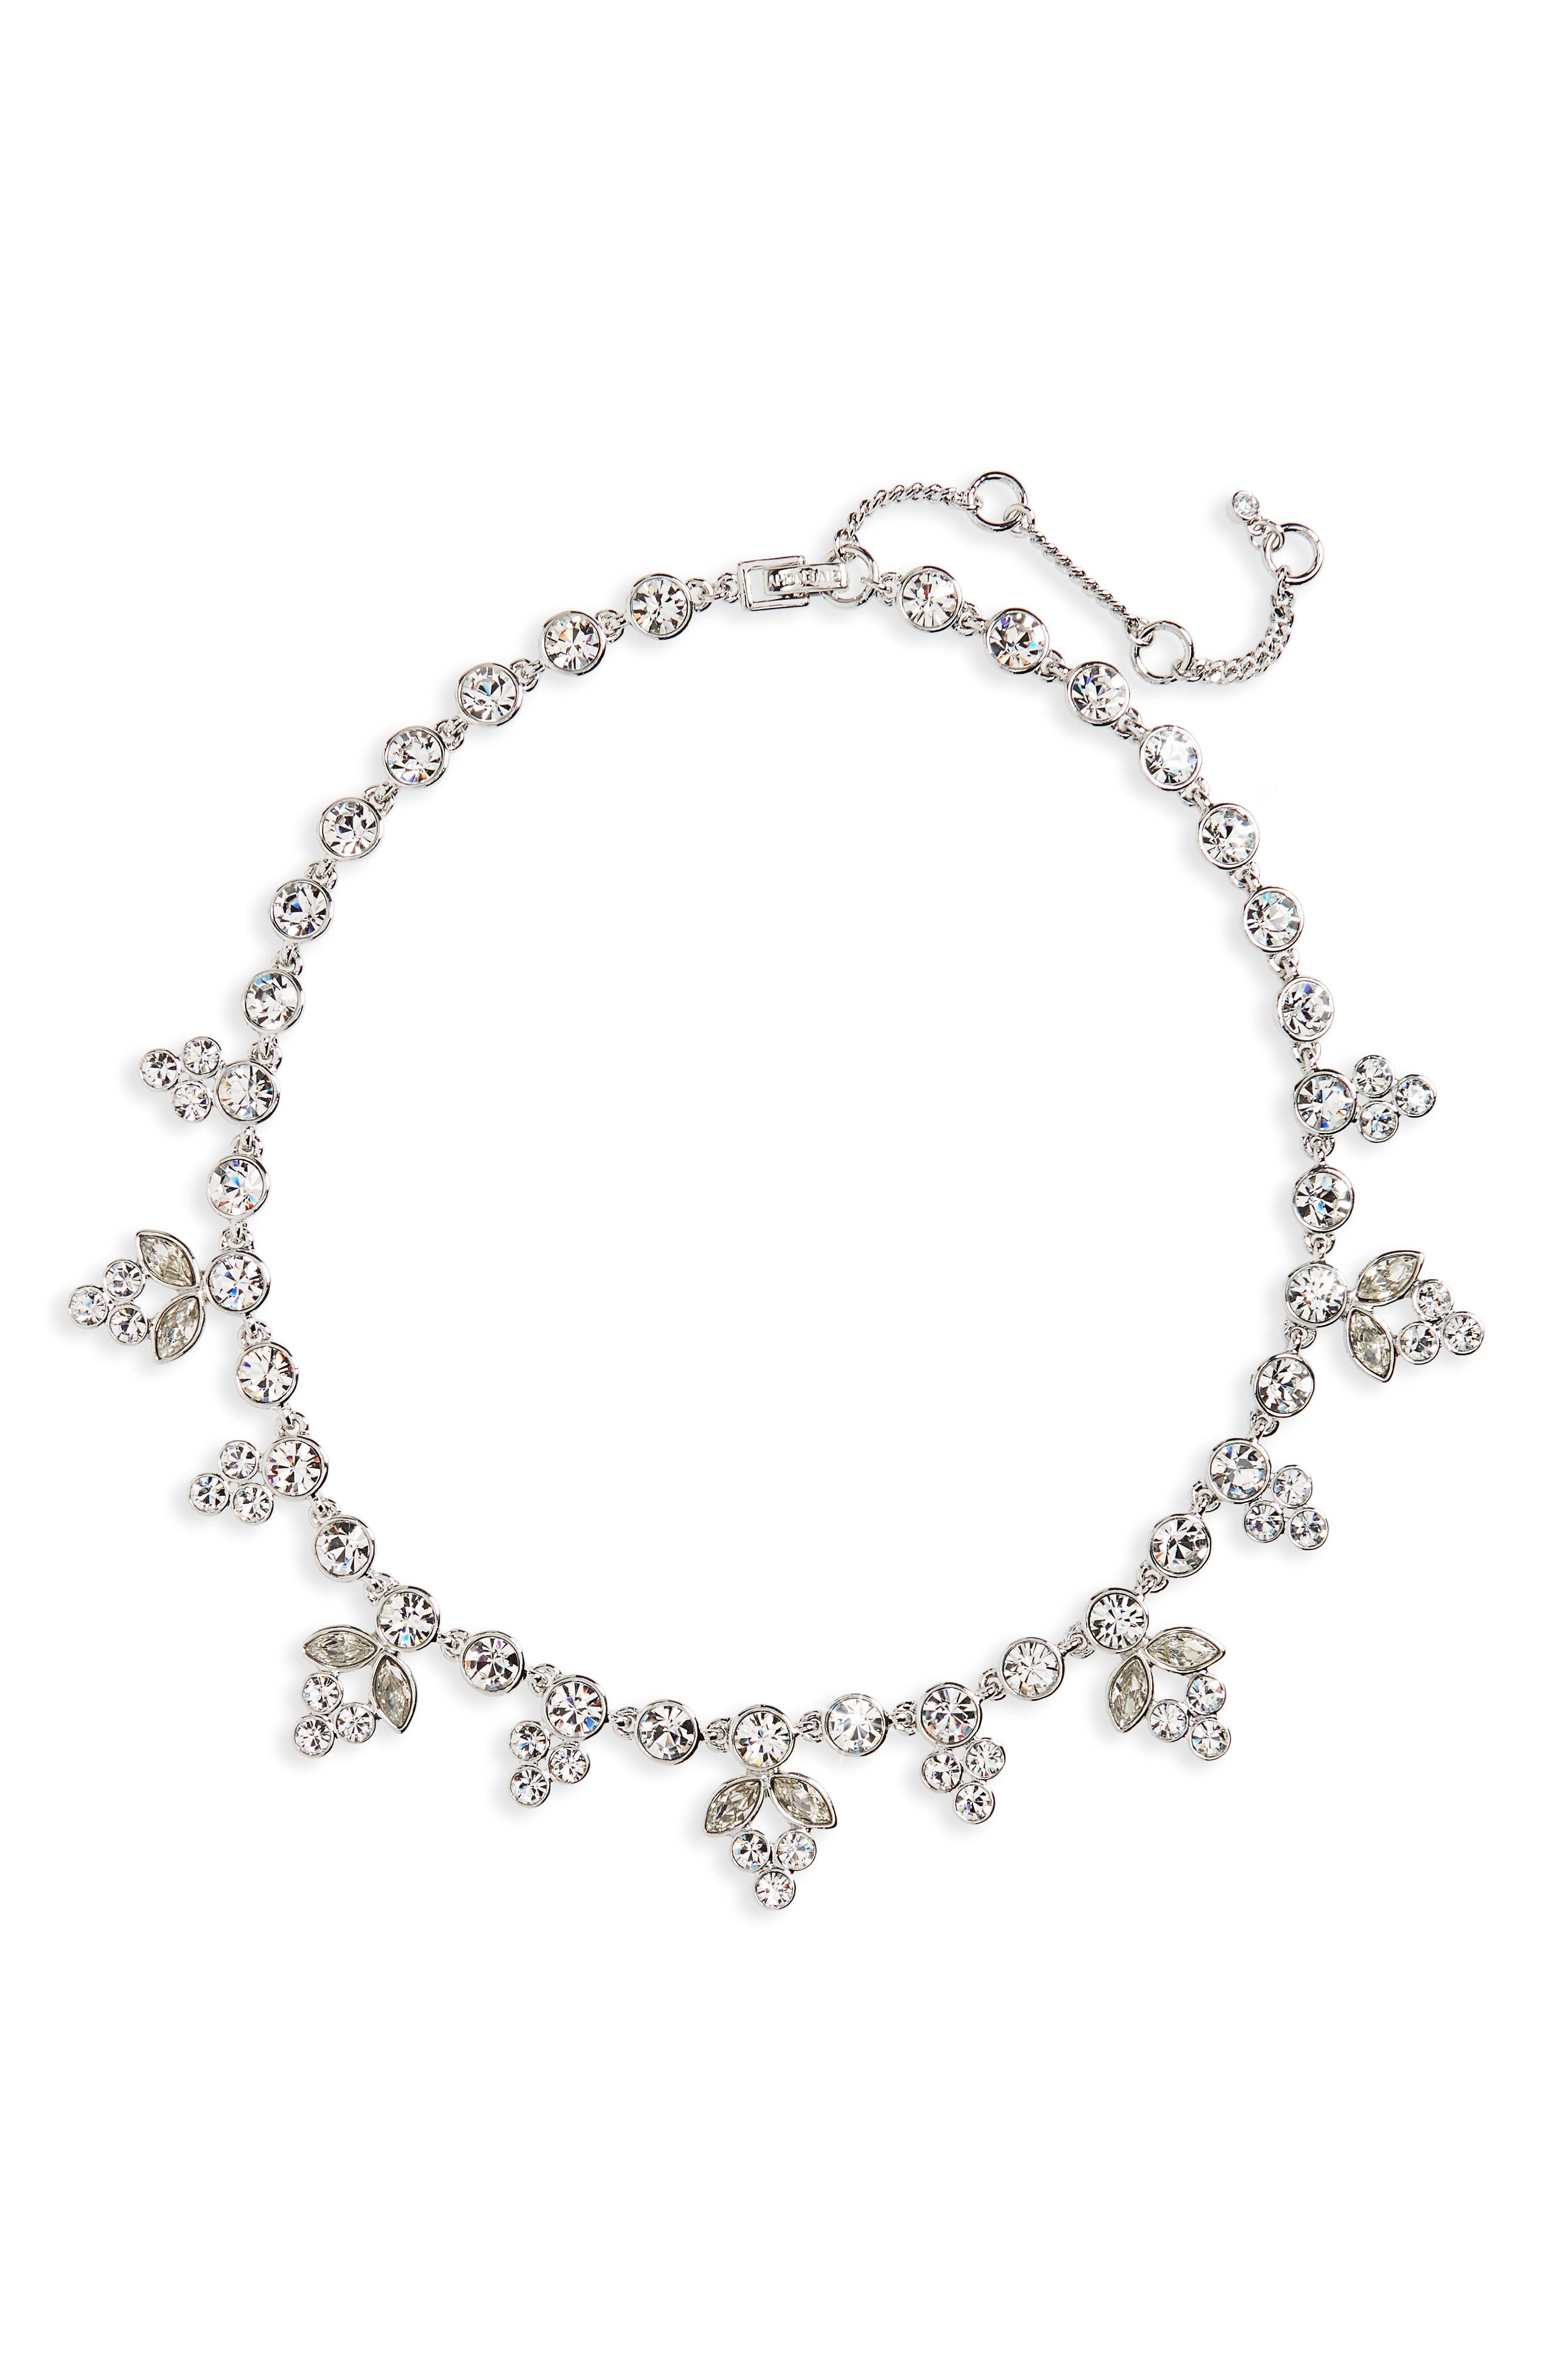 Main Image - Givenchy Sydney Collar Necklace